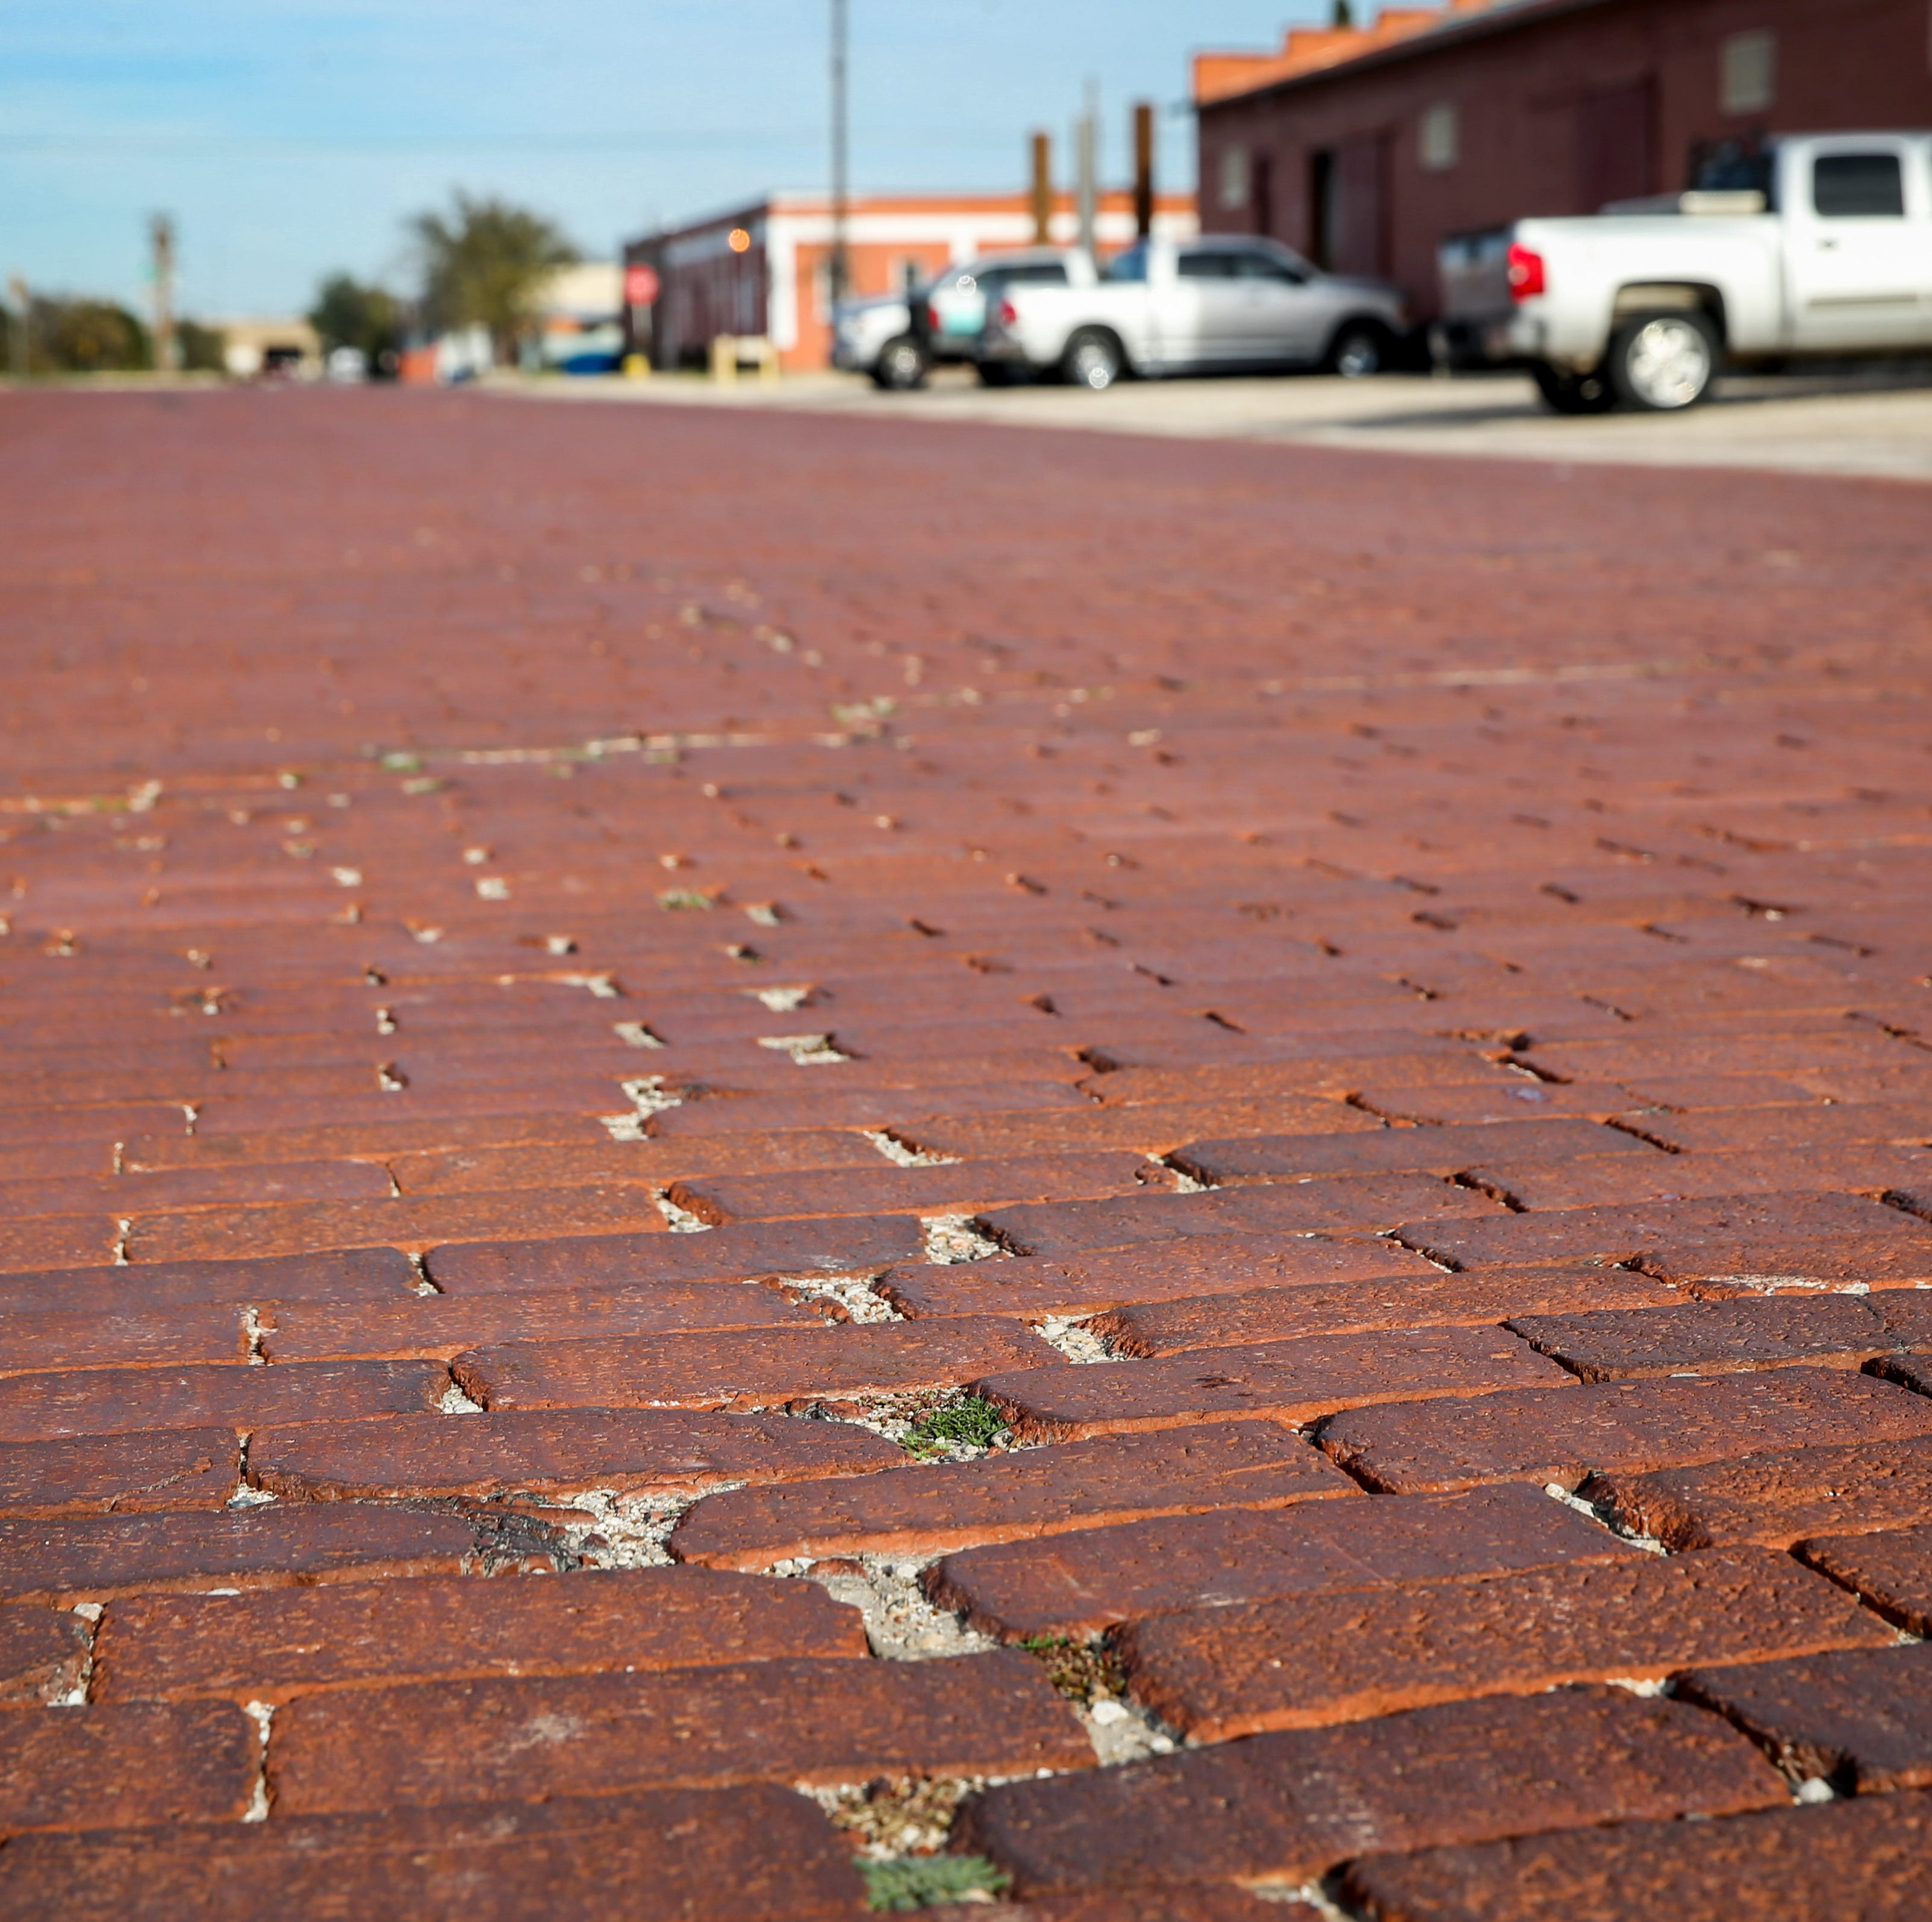 Part of San Angelo's paving history displayed on the last brick street in town